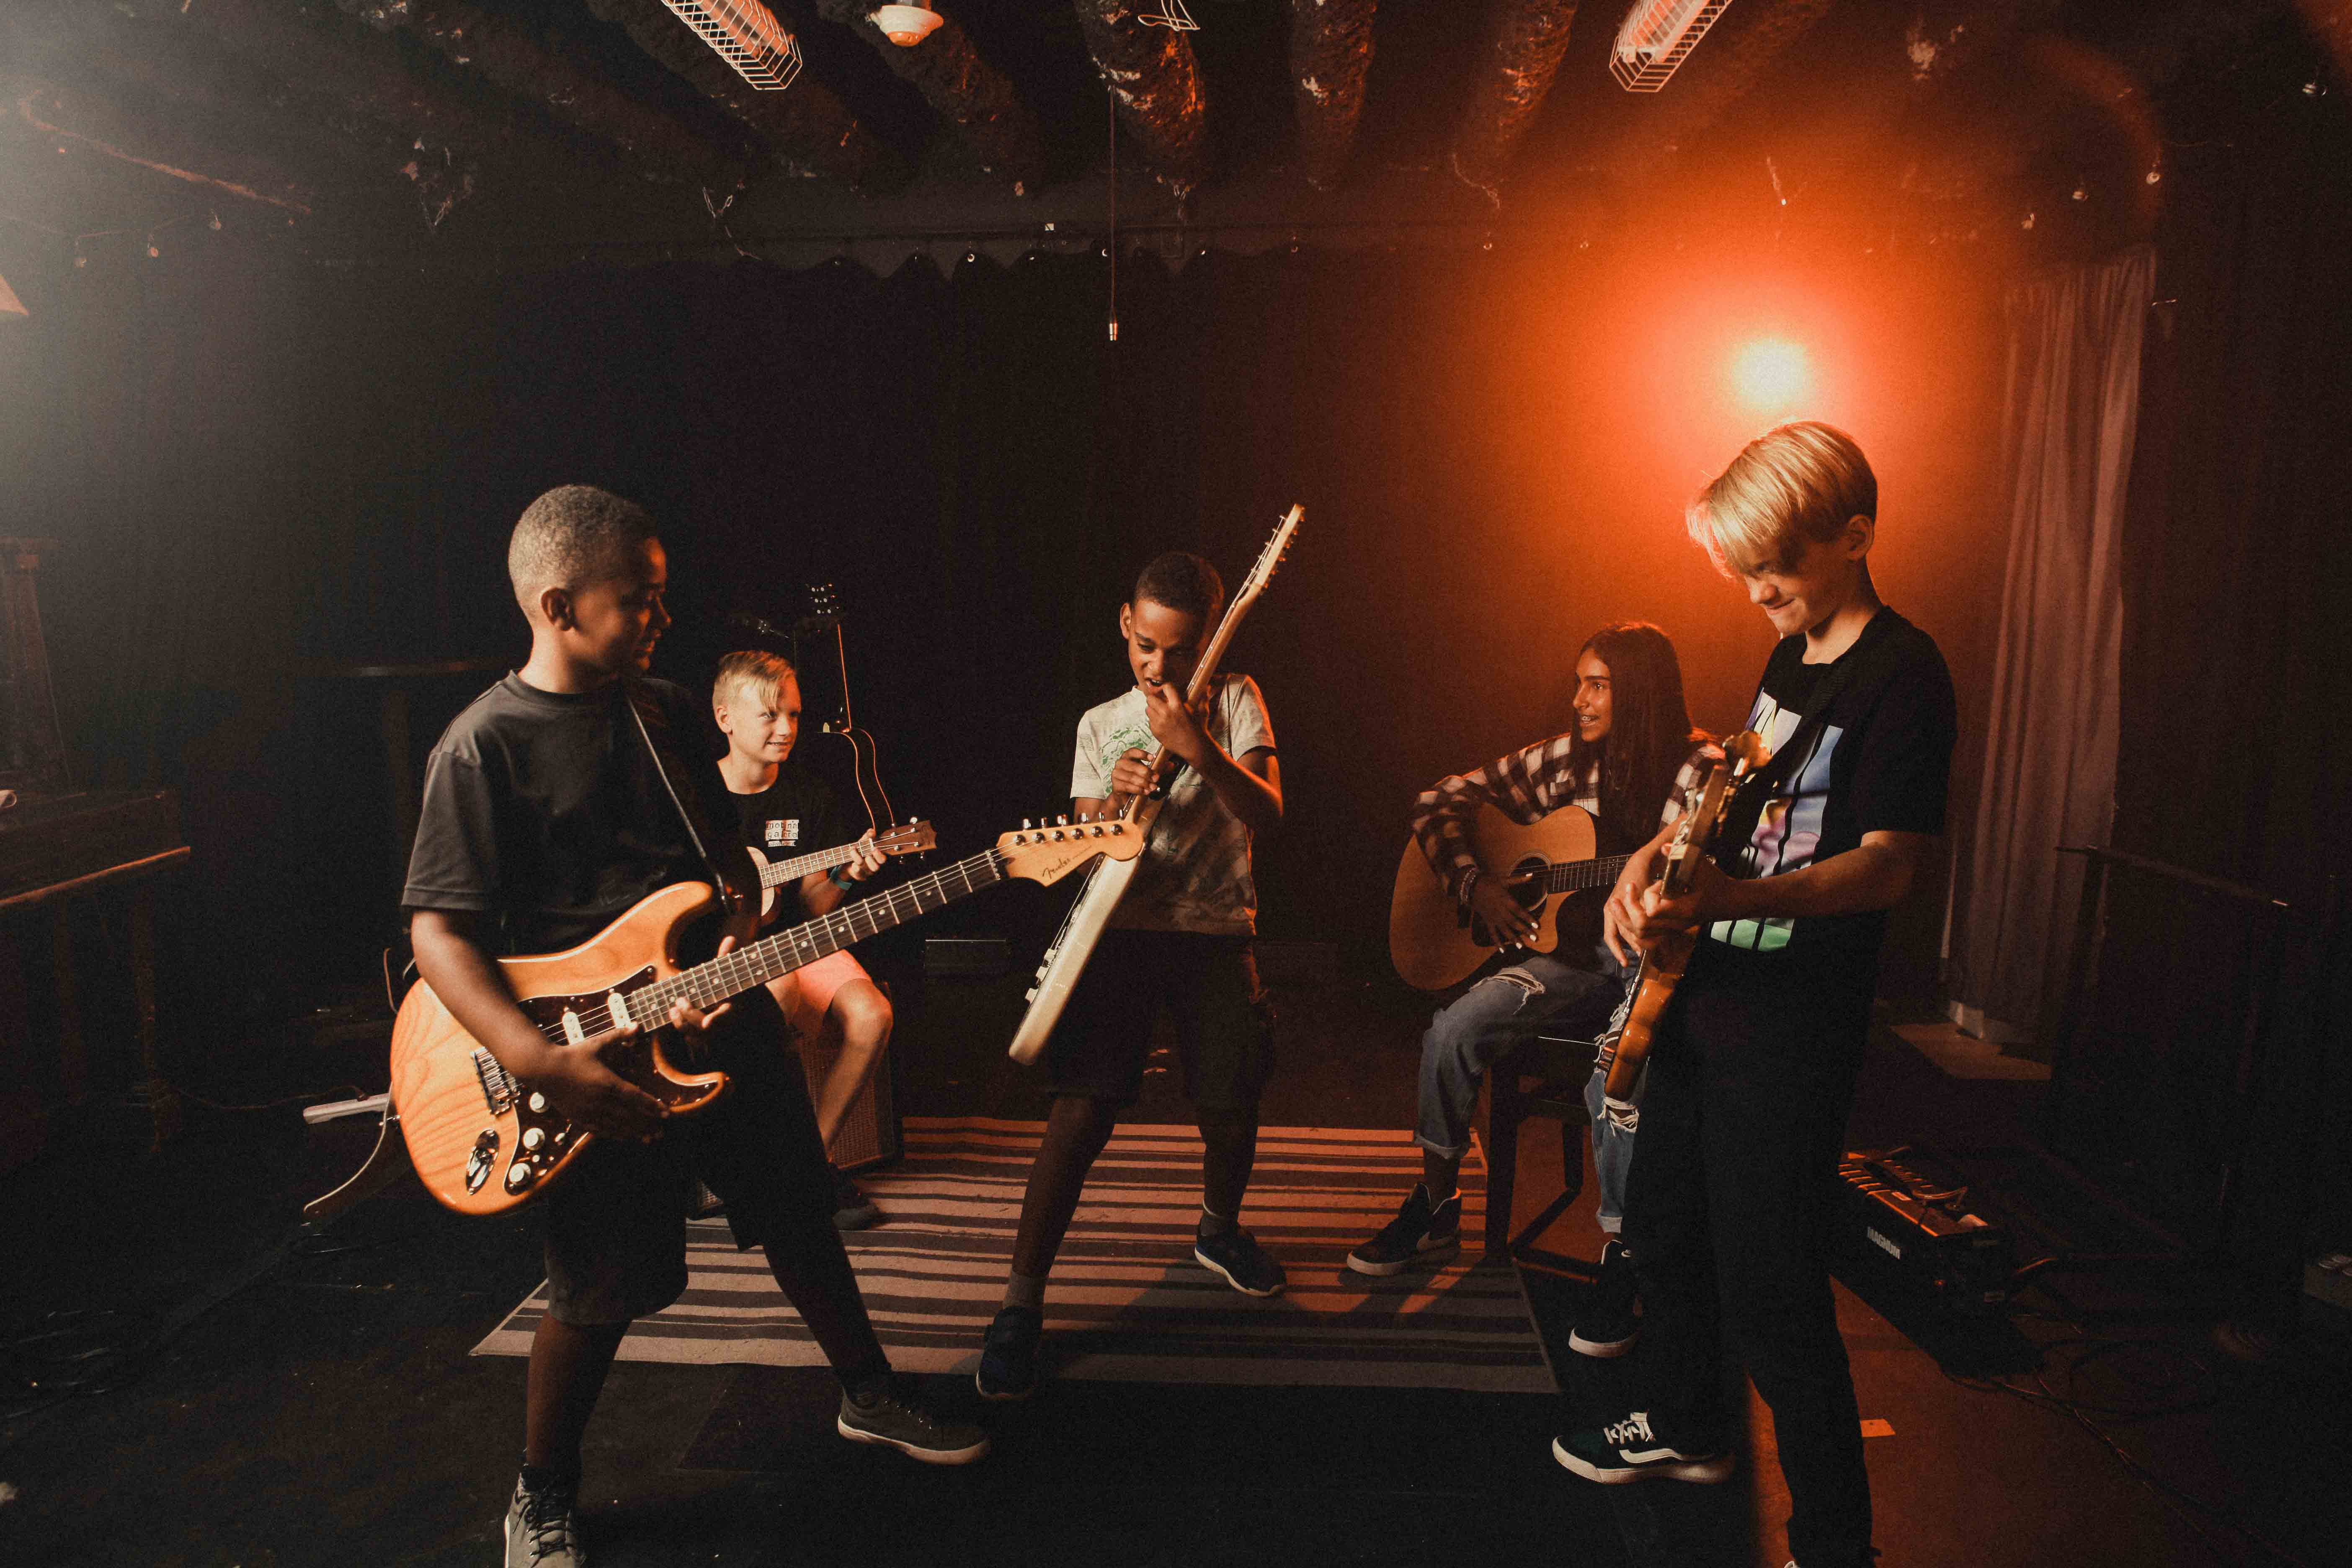 Kids playing guitars on a stage with a orange light in the background